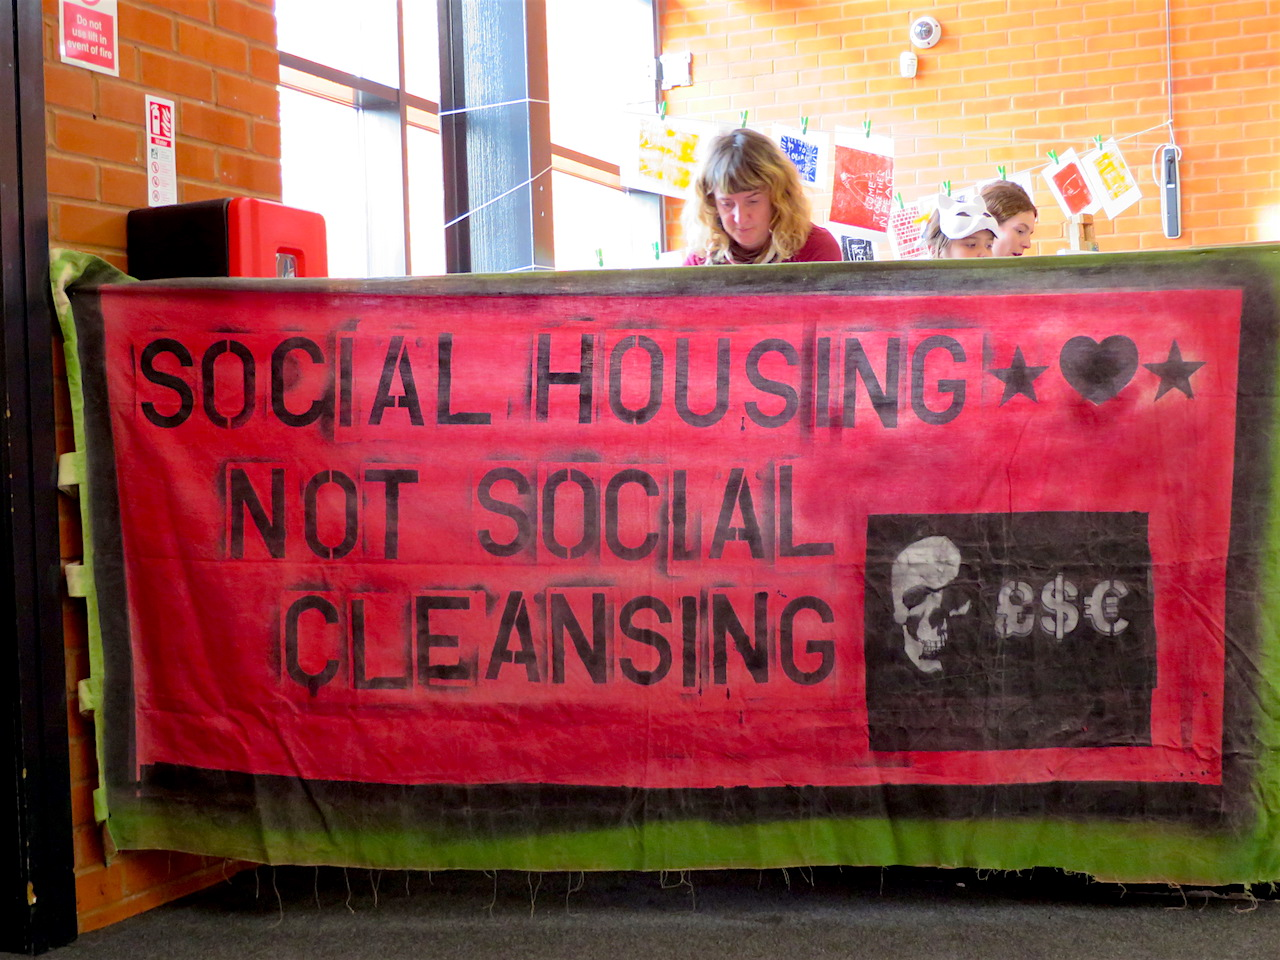 A banner in defence of social housing at the Anarchist Bookfair in Tottenham on October 28, 2017 (Photo: Andy Worthington).